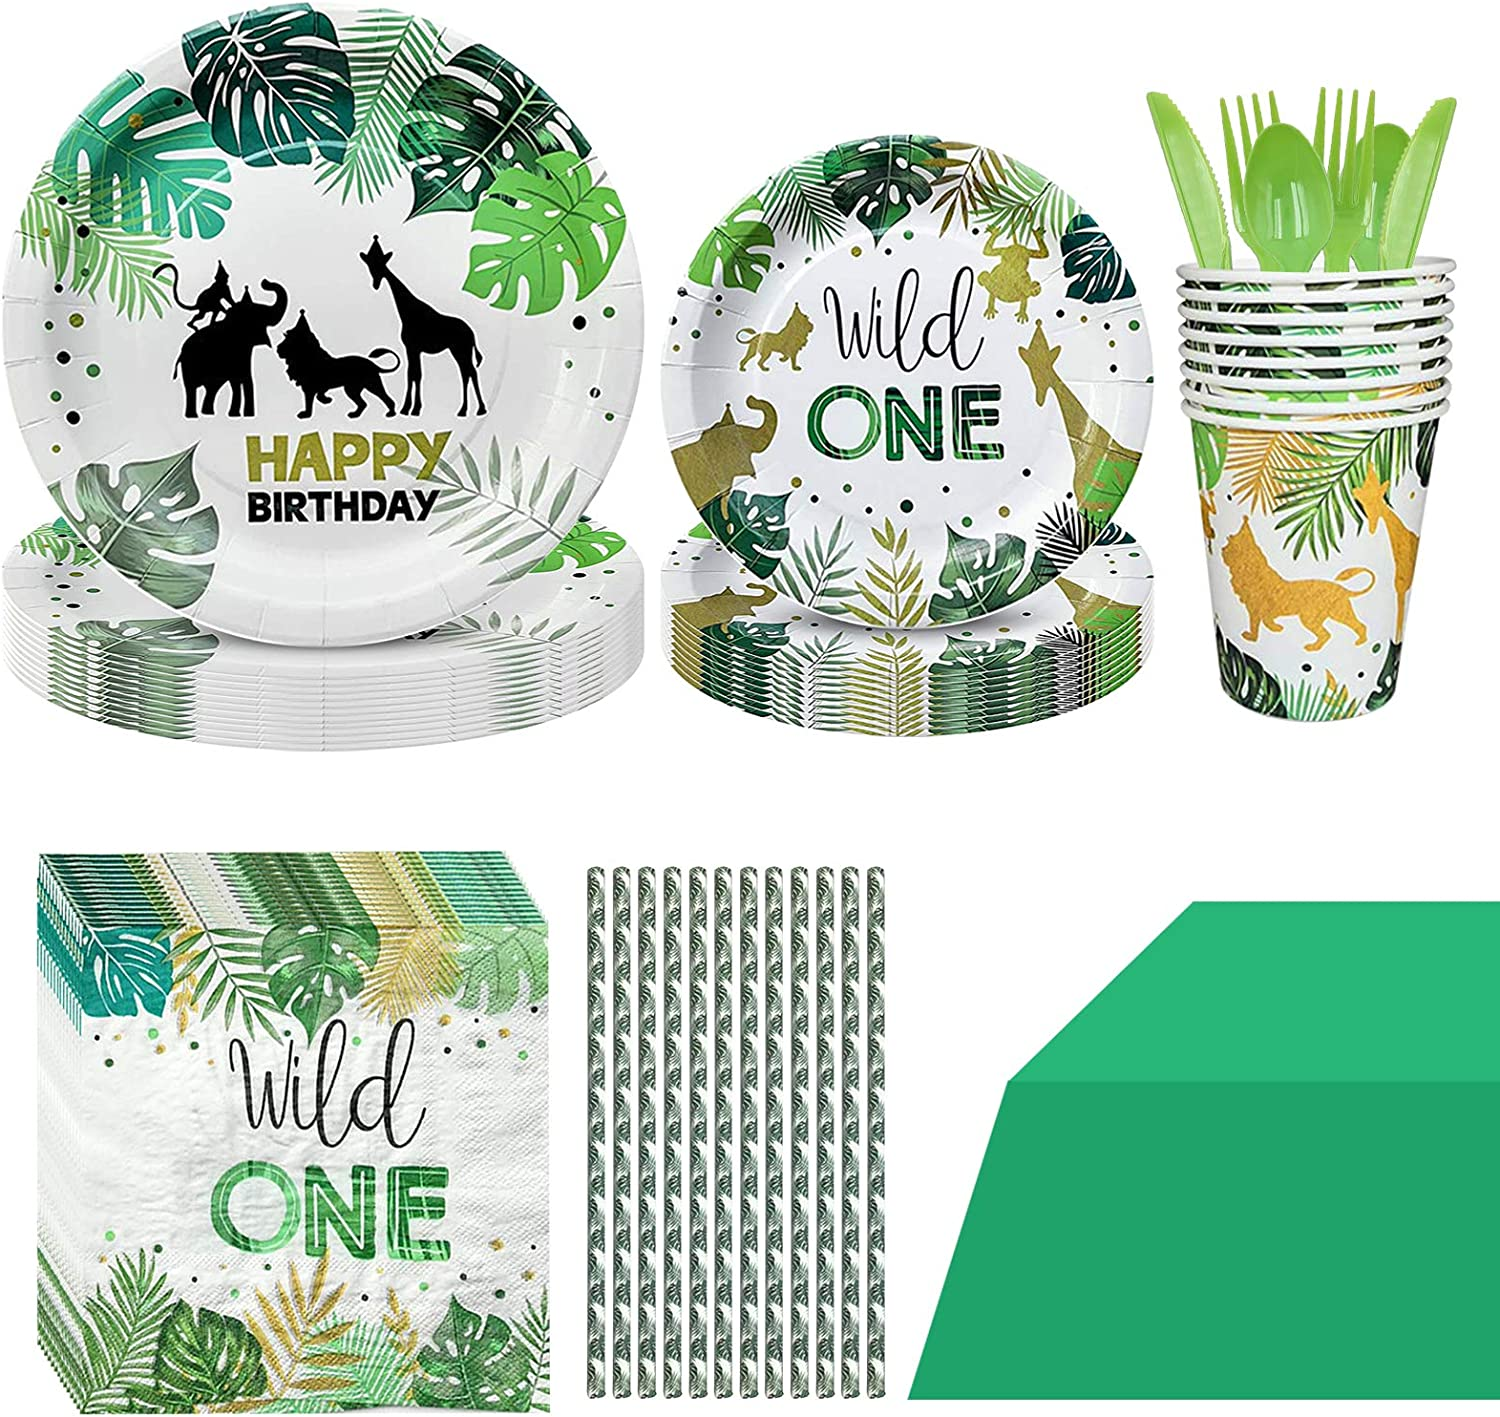 91PCS Wild One Party Supplies, Wild One Disposable Tableware with Wild One Plates Cups Napkins Straws Serves 10 for Wild One Baby Showers First Birthday Decorations